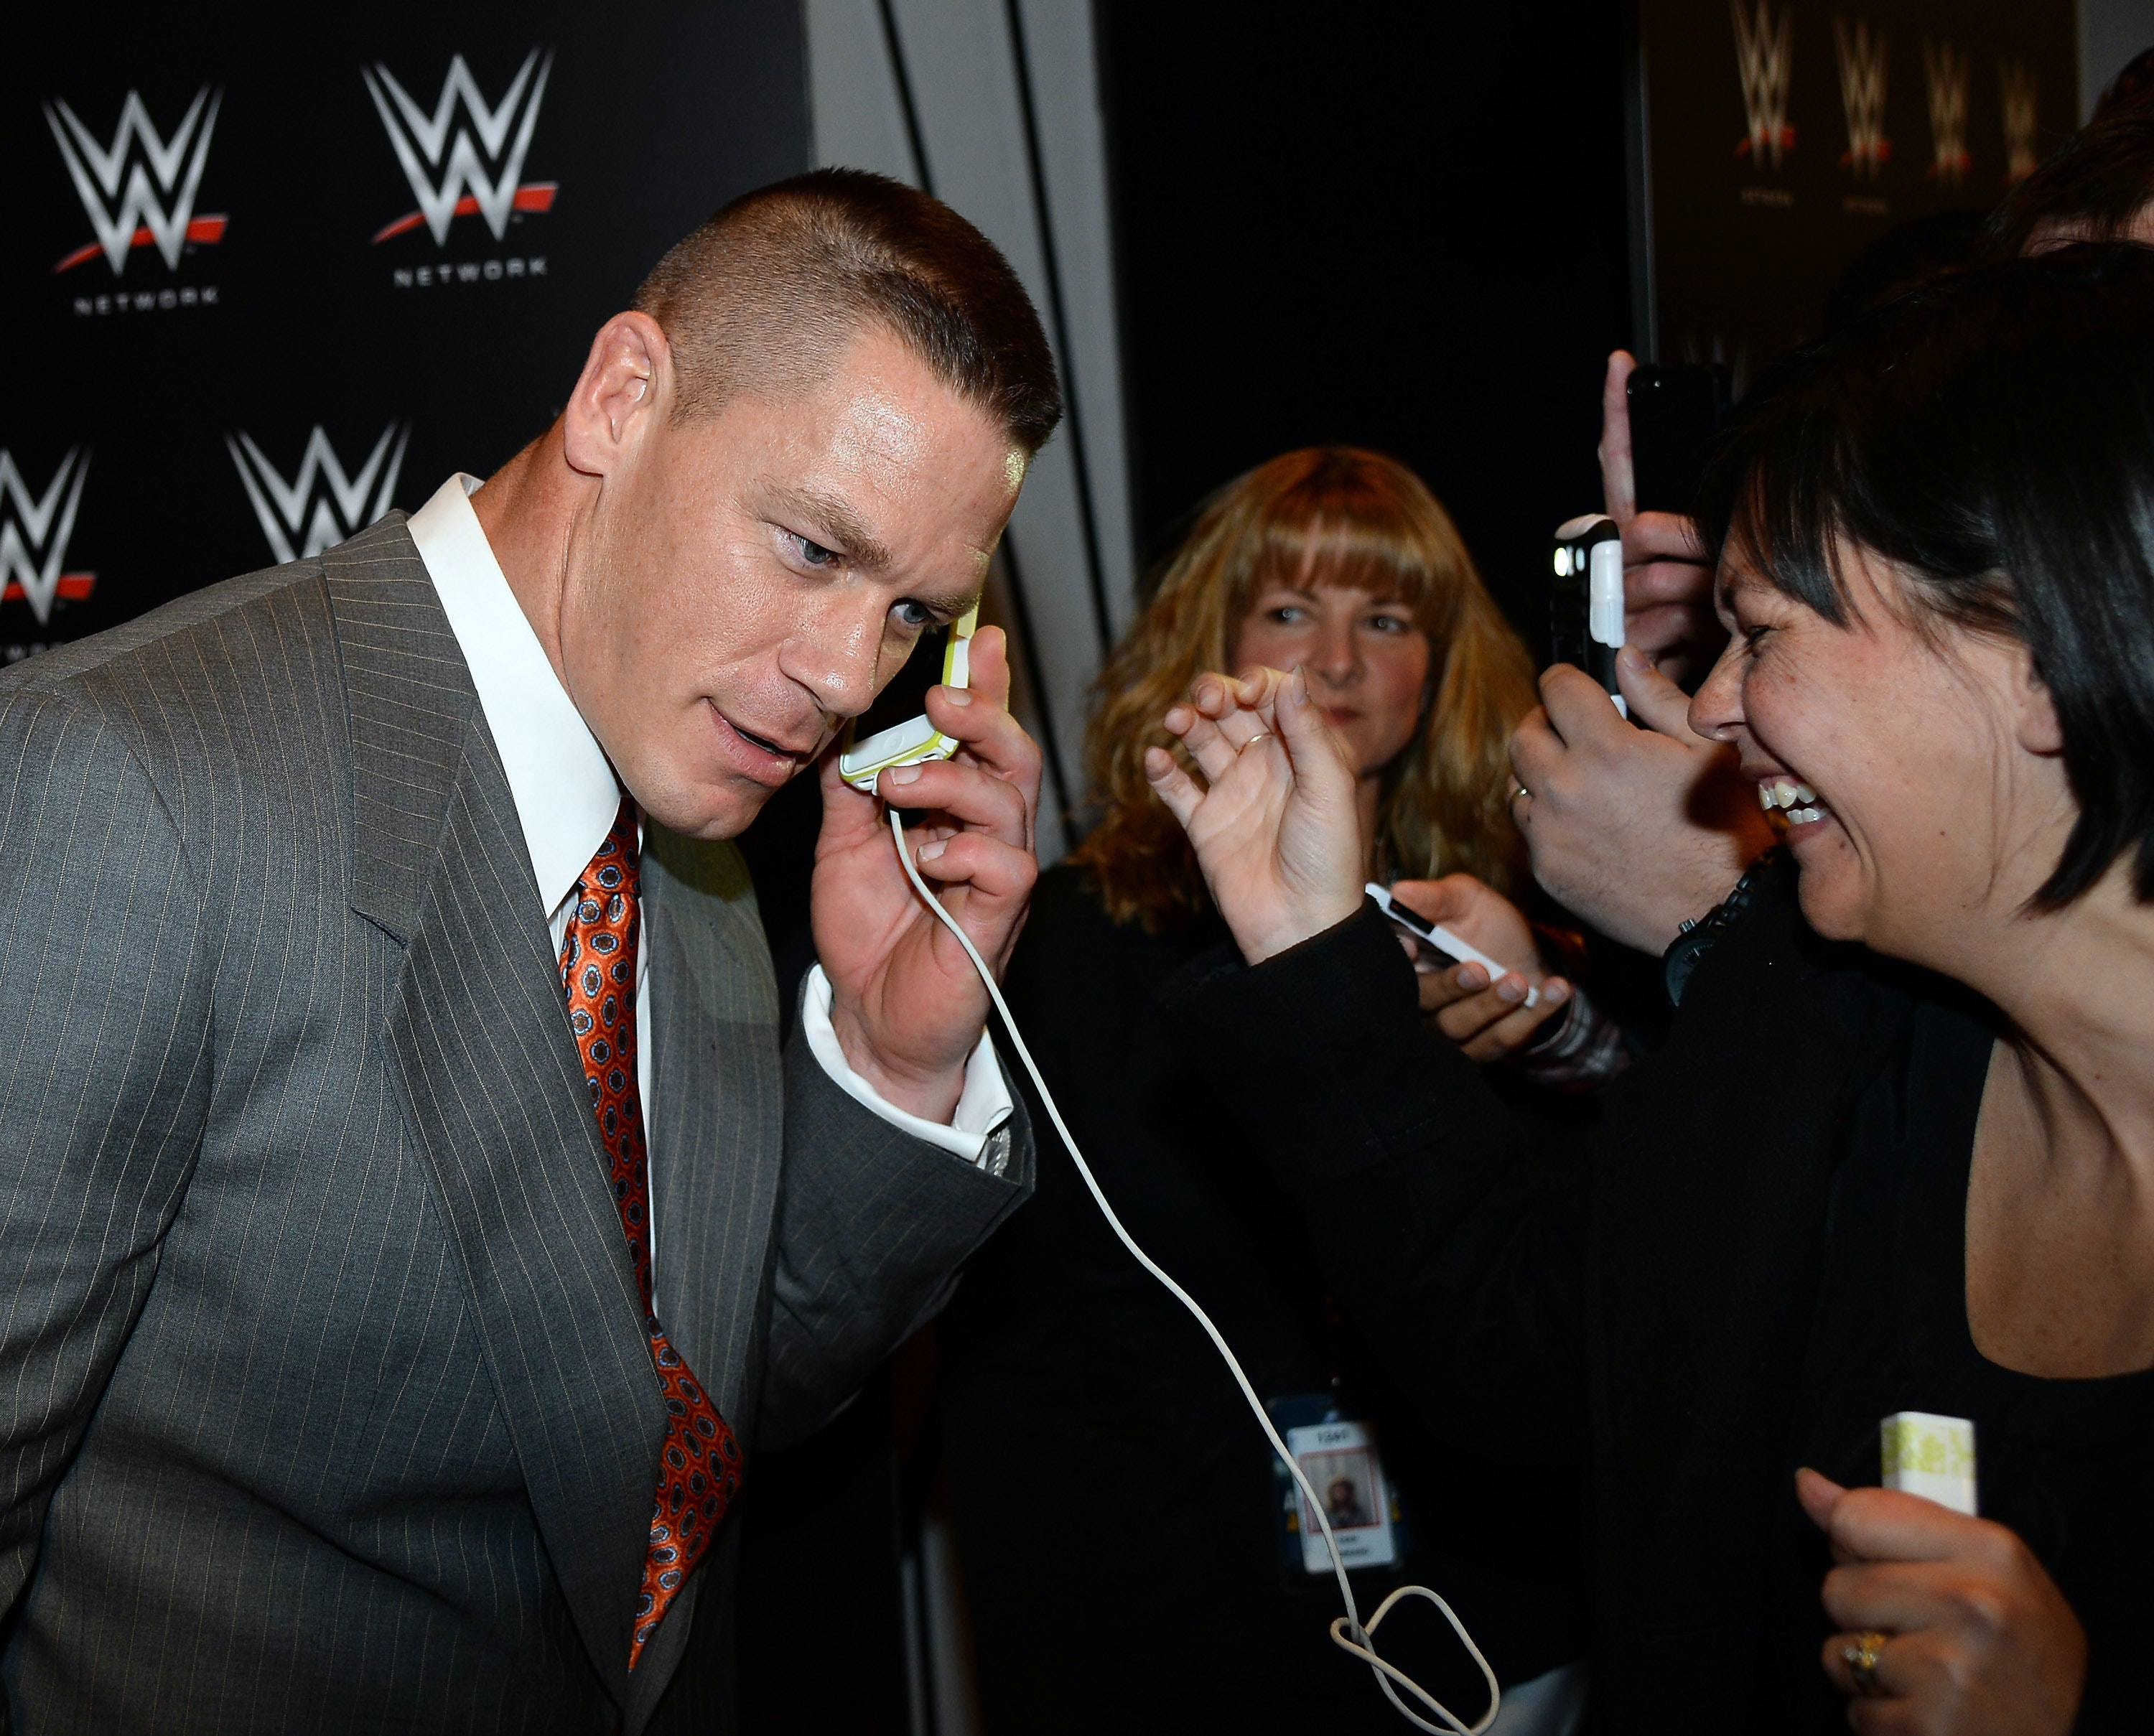 wwe wrestler john cena speaks to a fan on a cell phone at a news conference announcing the wwe netwo?rect=0%2C312%2C3000%2C1502&auto=format%2Ccompress&w=650 john cena reminds everyone about his personal meme with iphone tweet